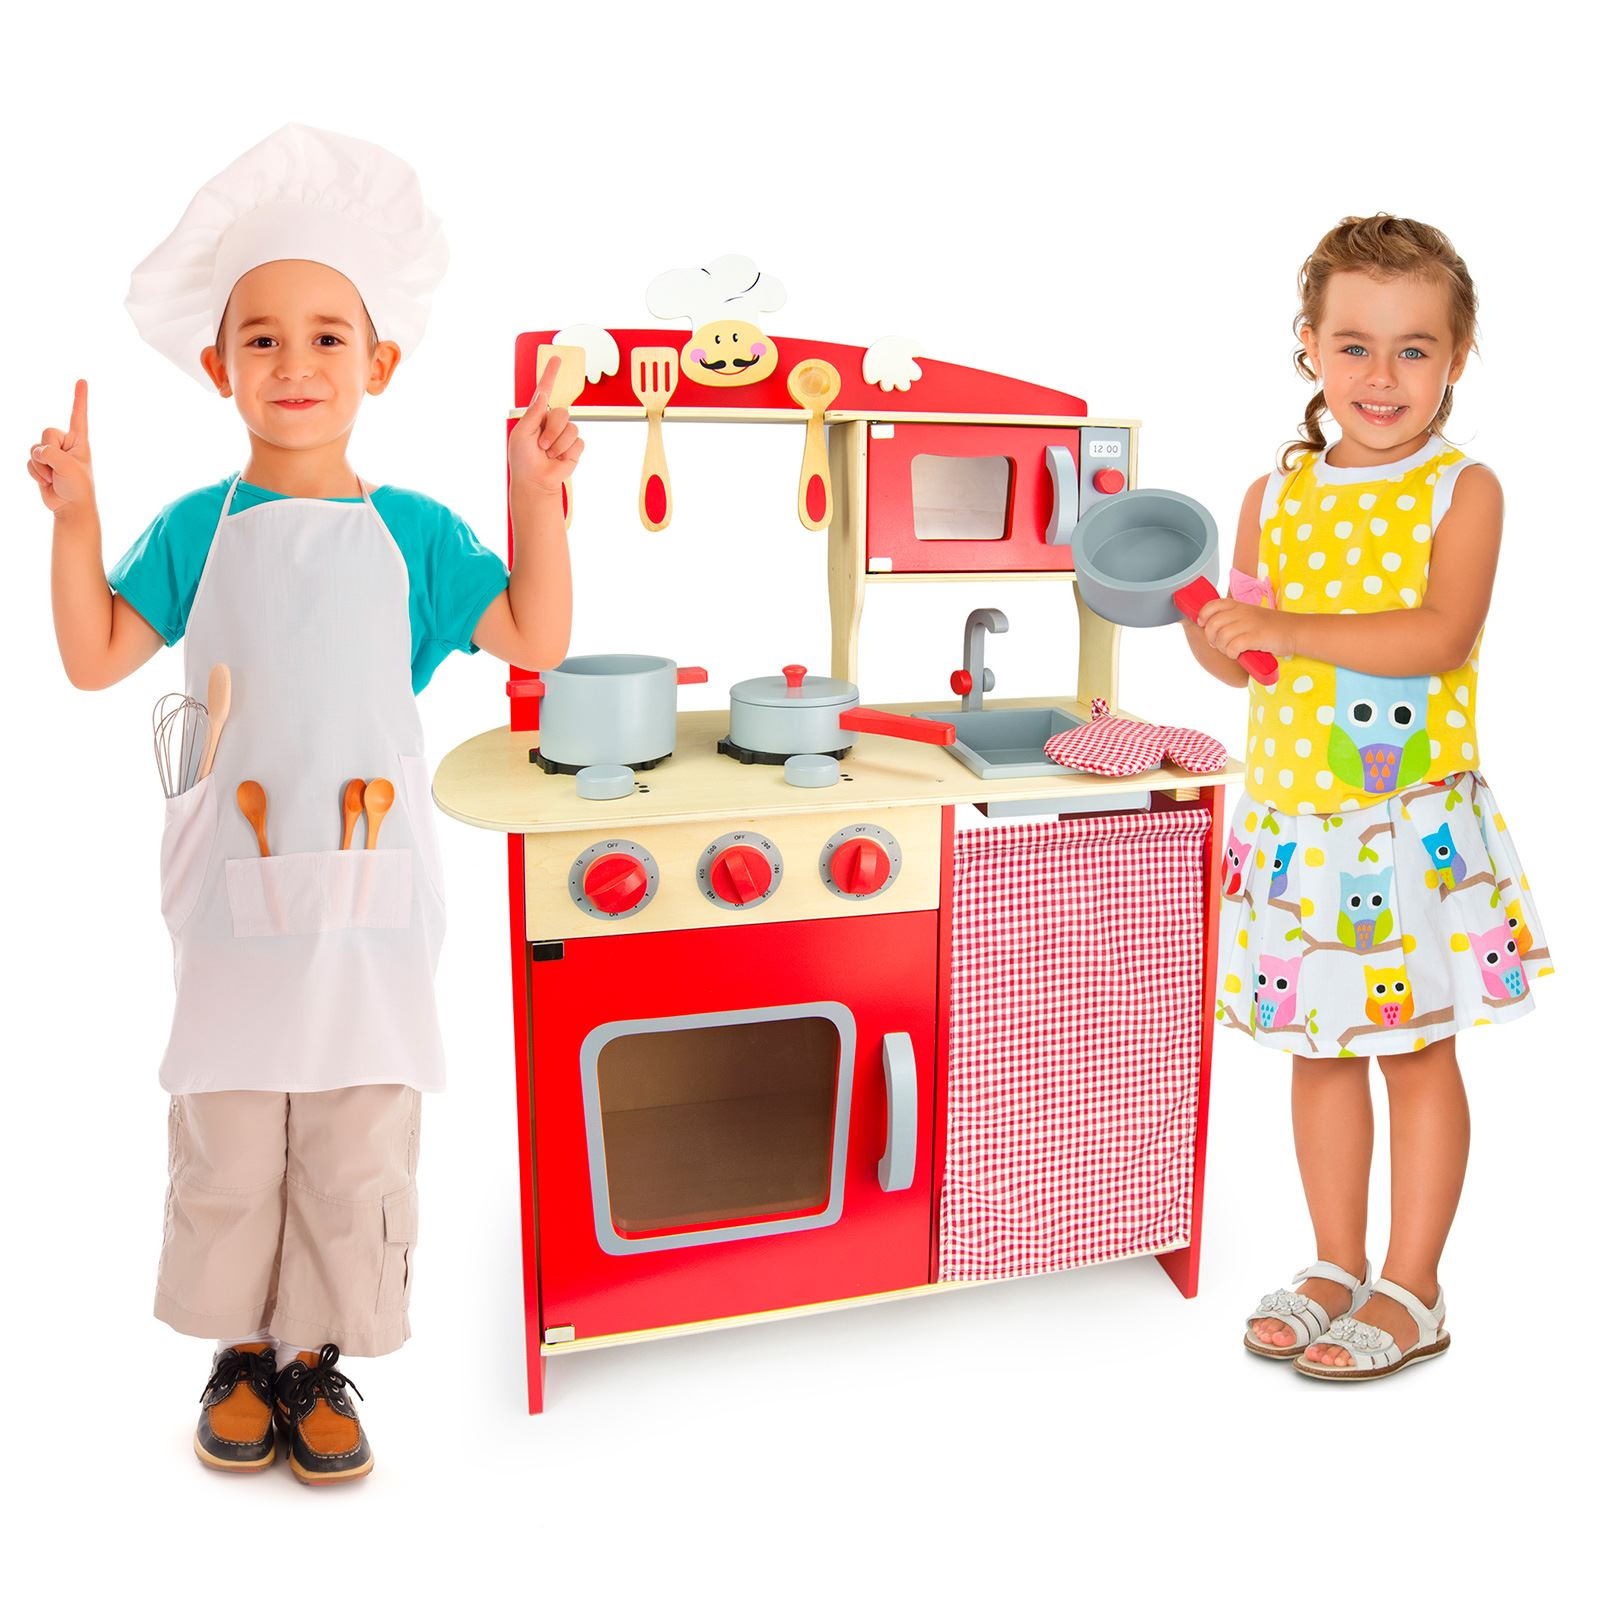 Kitchen Accessories Newcastle: KIDS WOODEN 'CHEF' KITCHEN RED WITH ACCESSORIES By LEOMARK